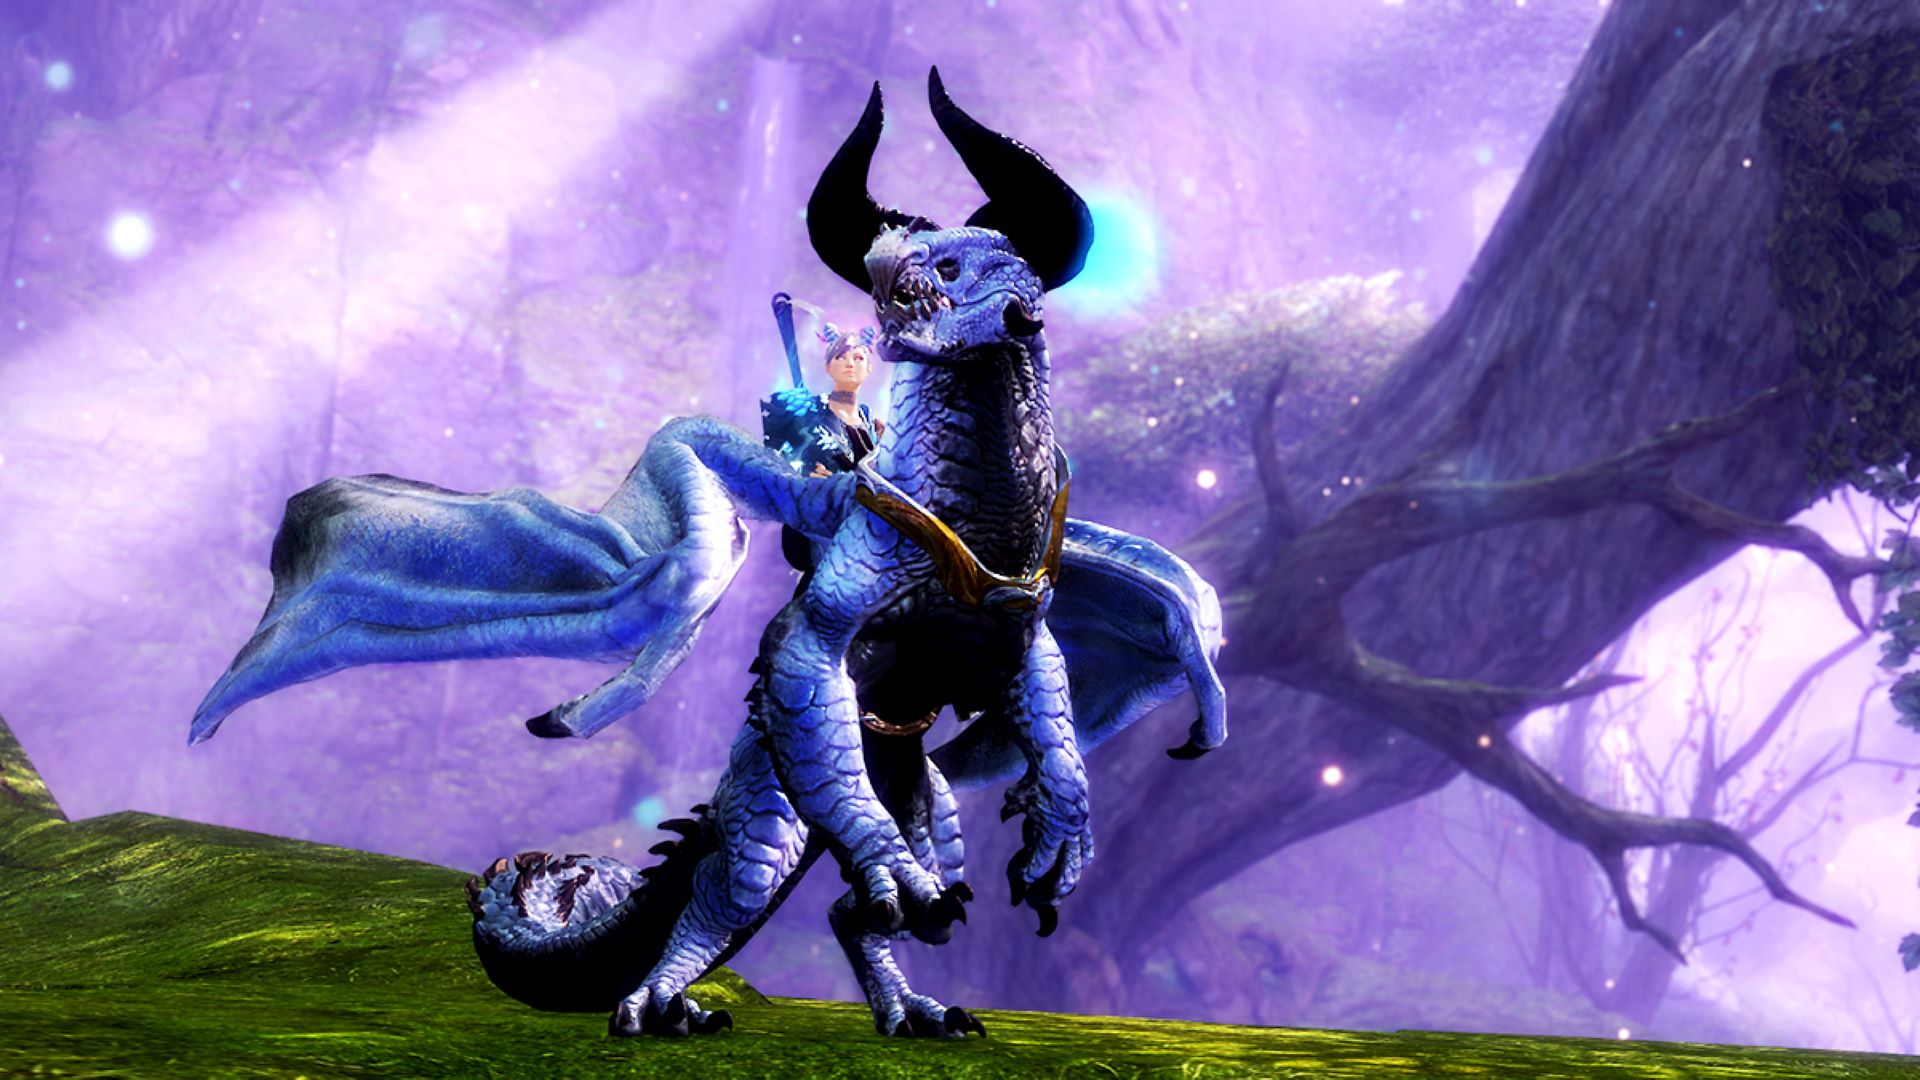 Experience a momentous conclusion in Guild Wars 2's latest Living World episode